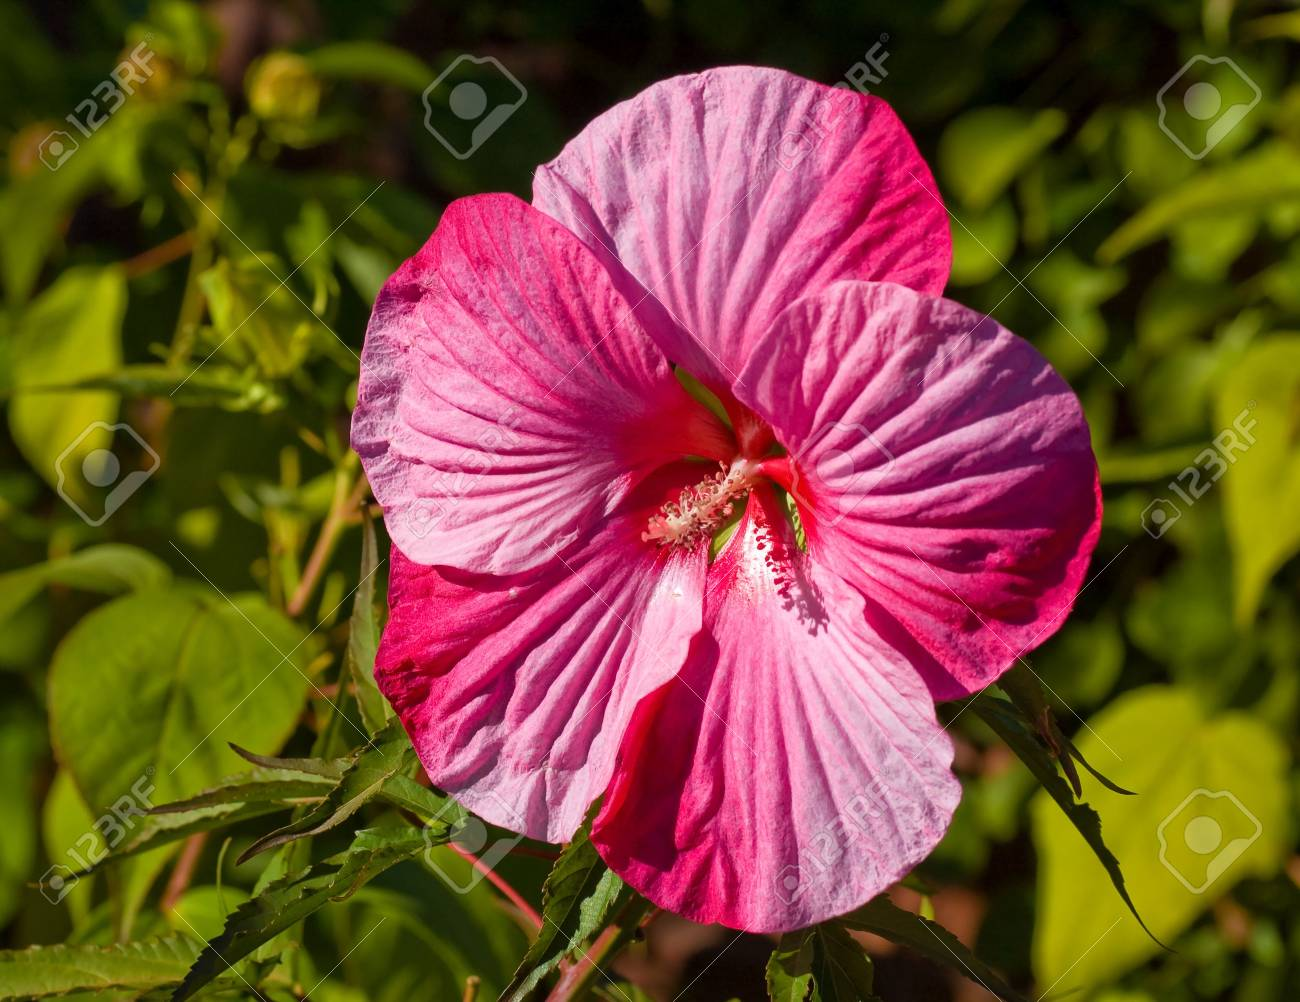 Close Up Shot Of A Huge Pink Flower In A Garden Stock Photo Picture